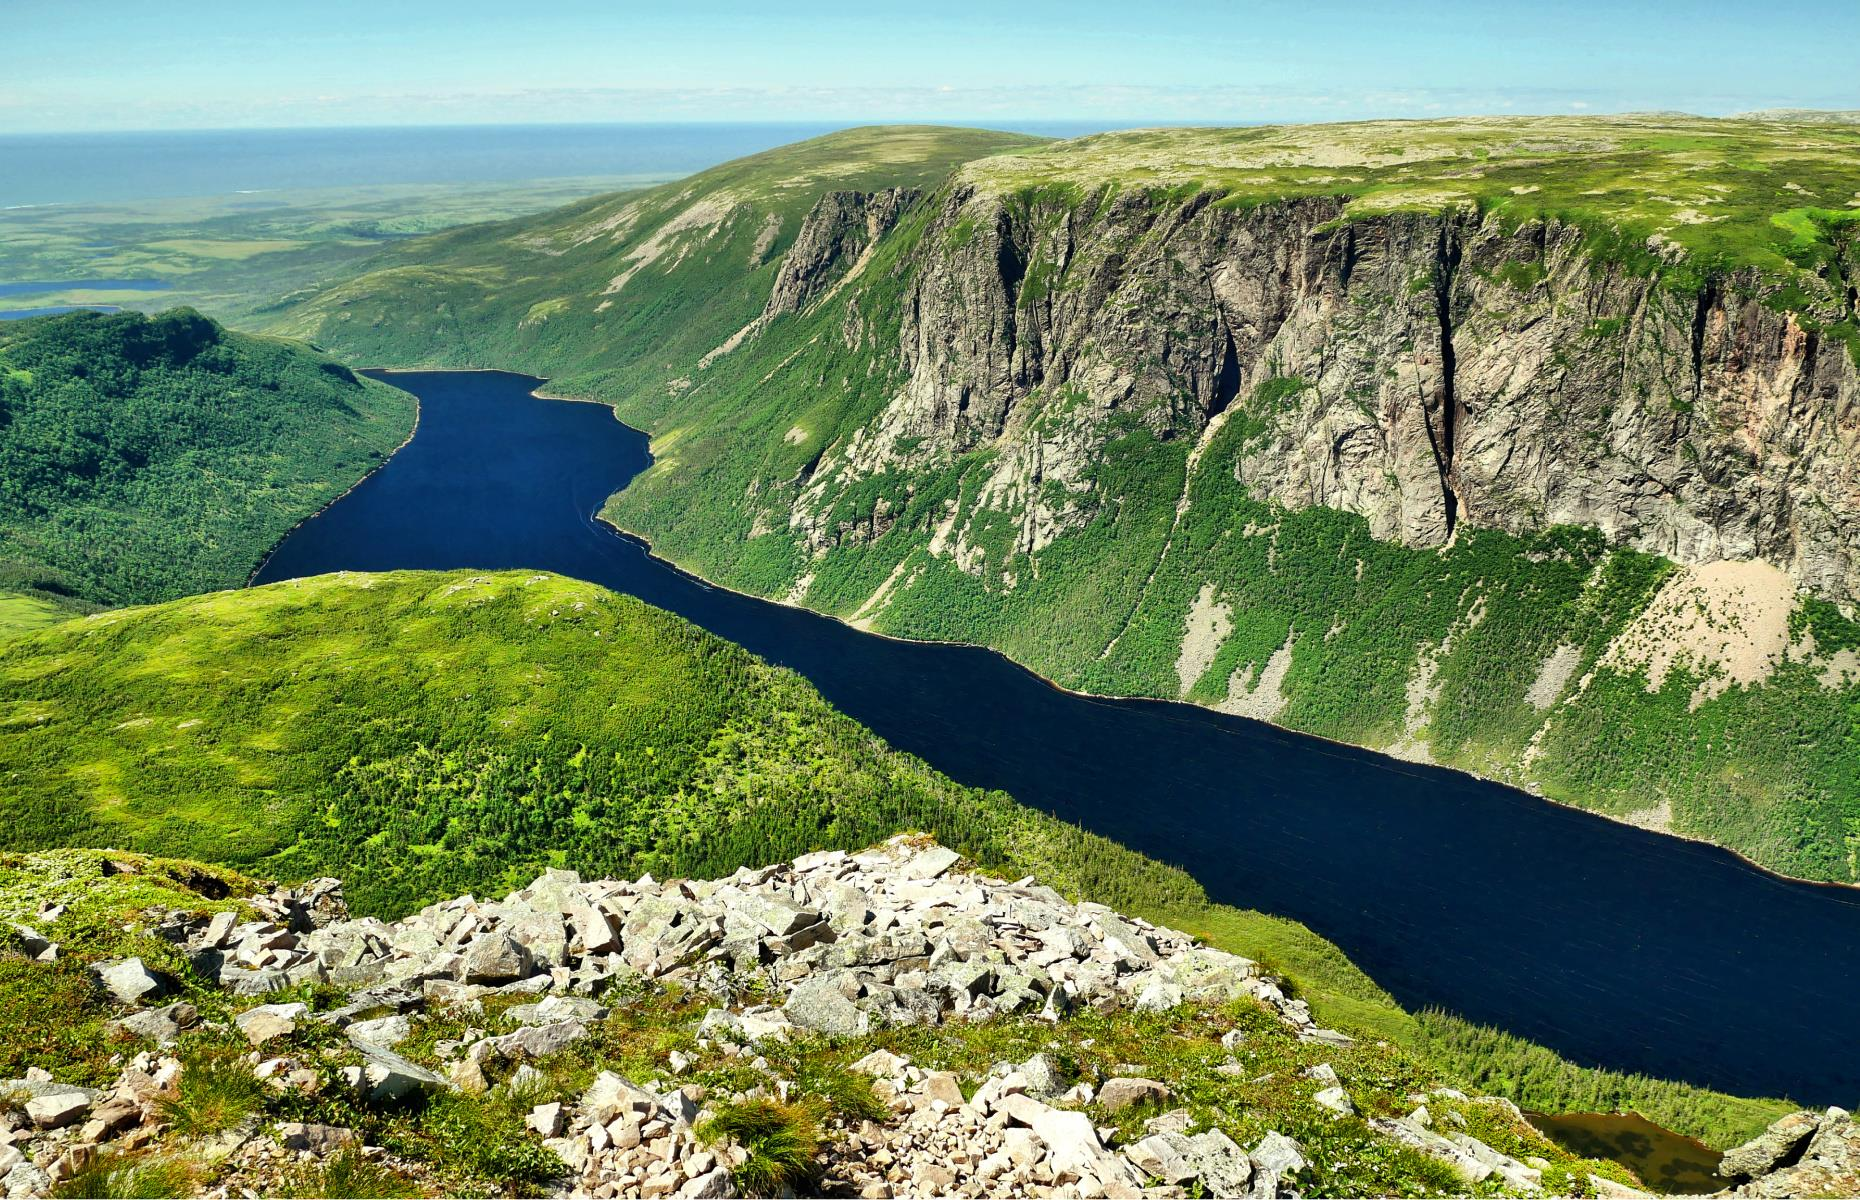 Slide 30 of 31: Situated on the west coast of Newfoundland, Gros Morne National Park is also a UNESCO World Heritage Site, recognized for its raw terrain and sheer variety of natural wonder. The glacier-formed landscape is favored by hikers, who walk in areas like the Tablelands, which were formed by plate tectonics millions of years ago. There are also mountains, beaches and sea stacks to be seen, with each natural feature telling a story about the formation of Earth. See more of the world's most beautiful natural wonders here.